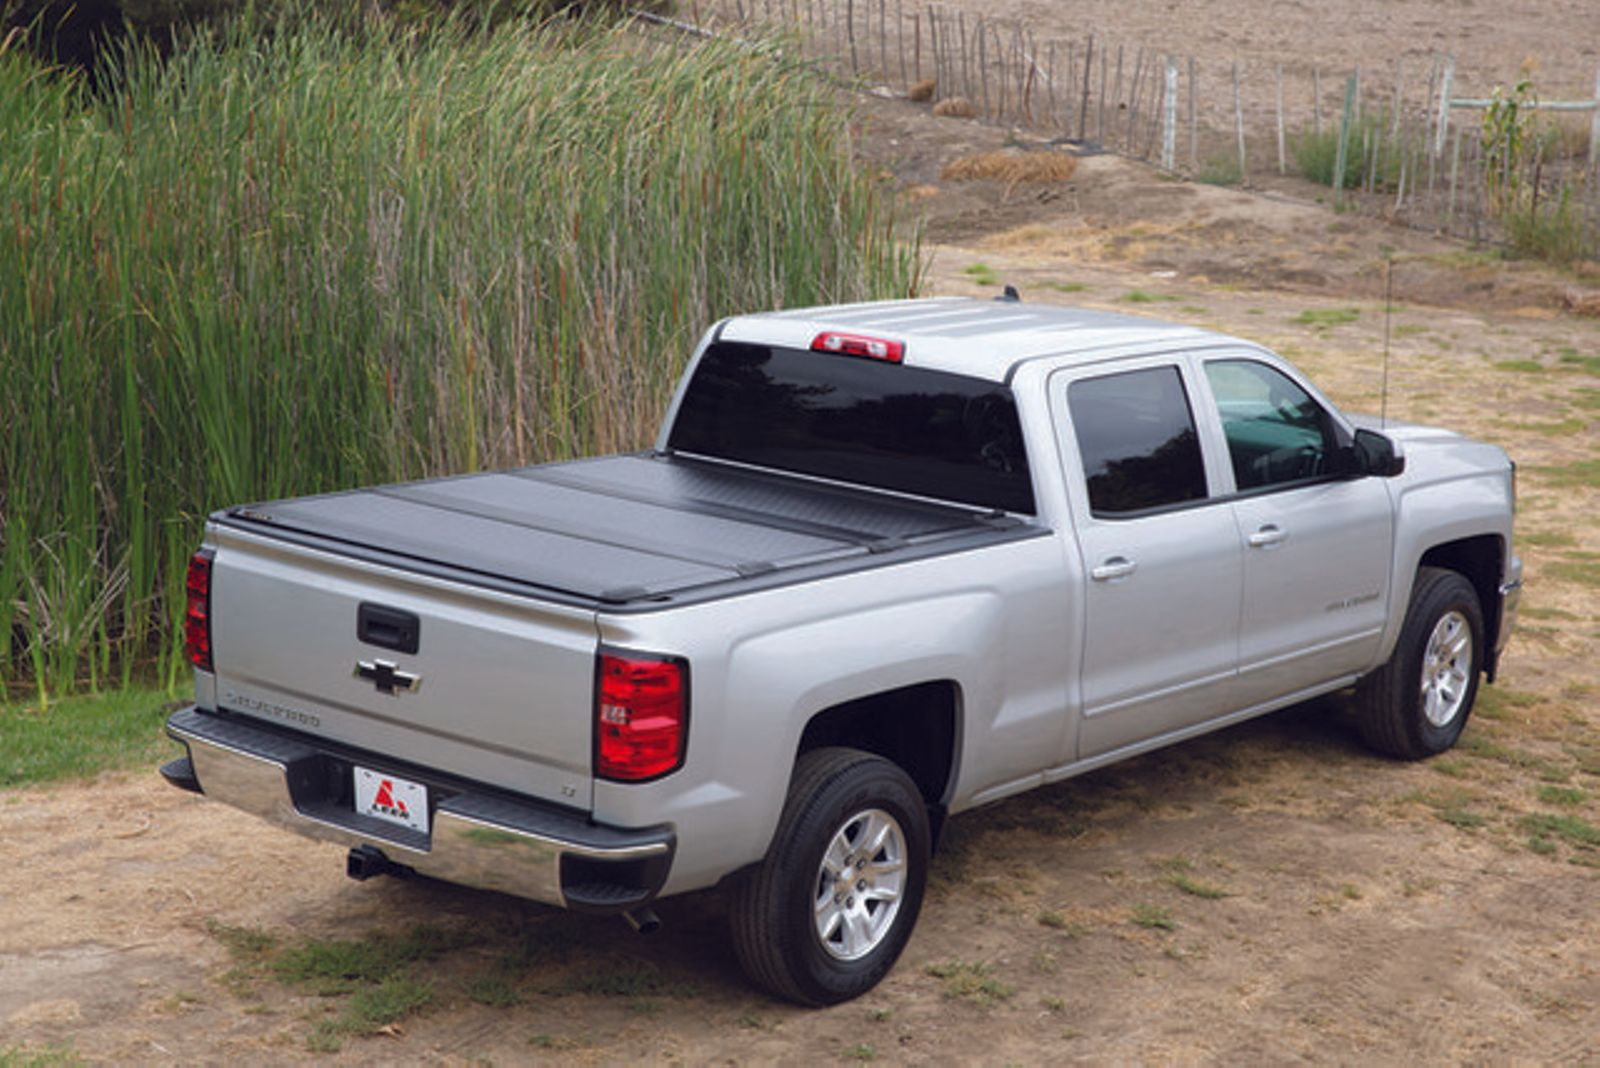 Image Result For Honda Ridgeline Doors